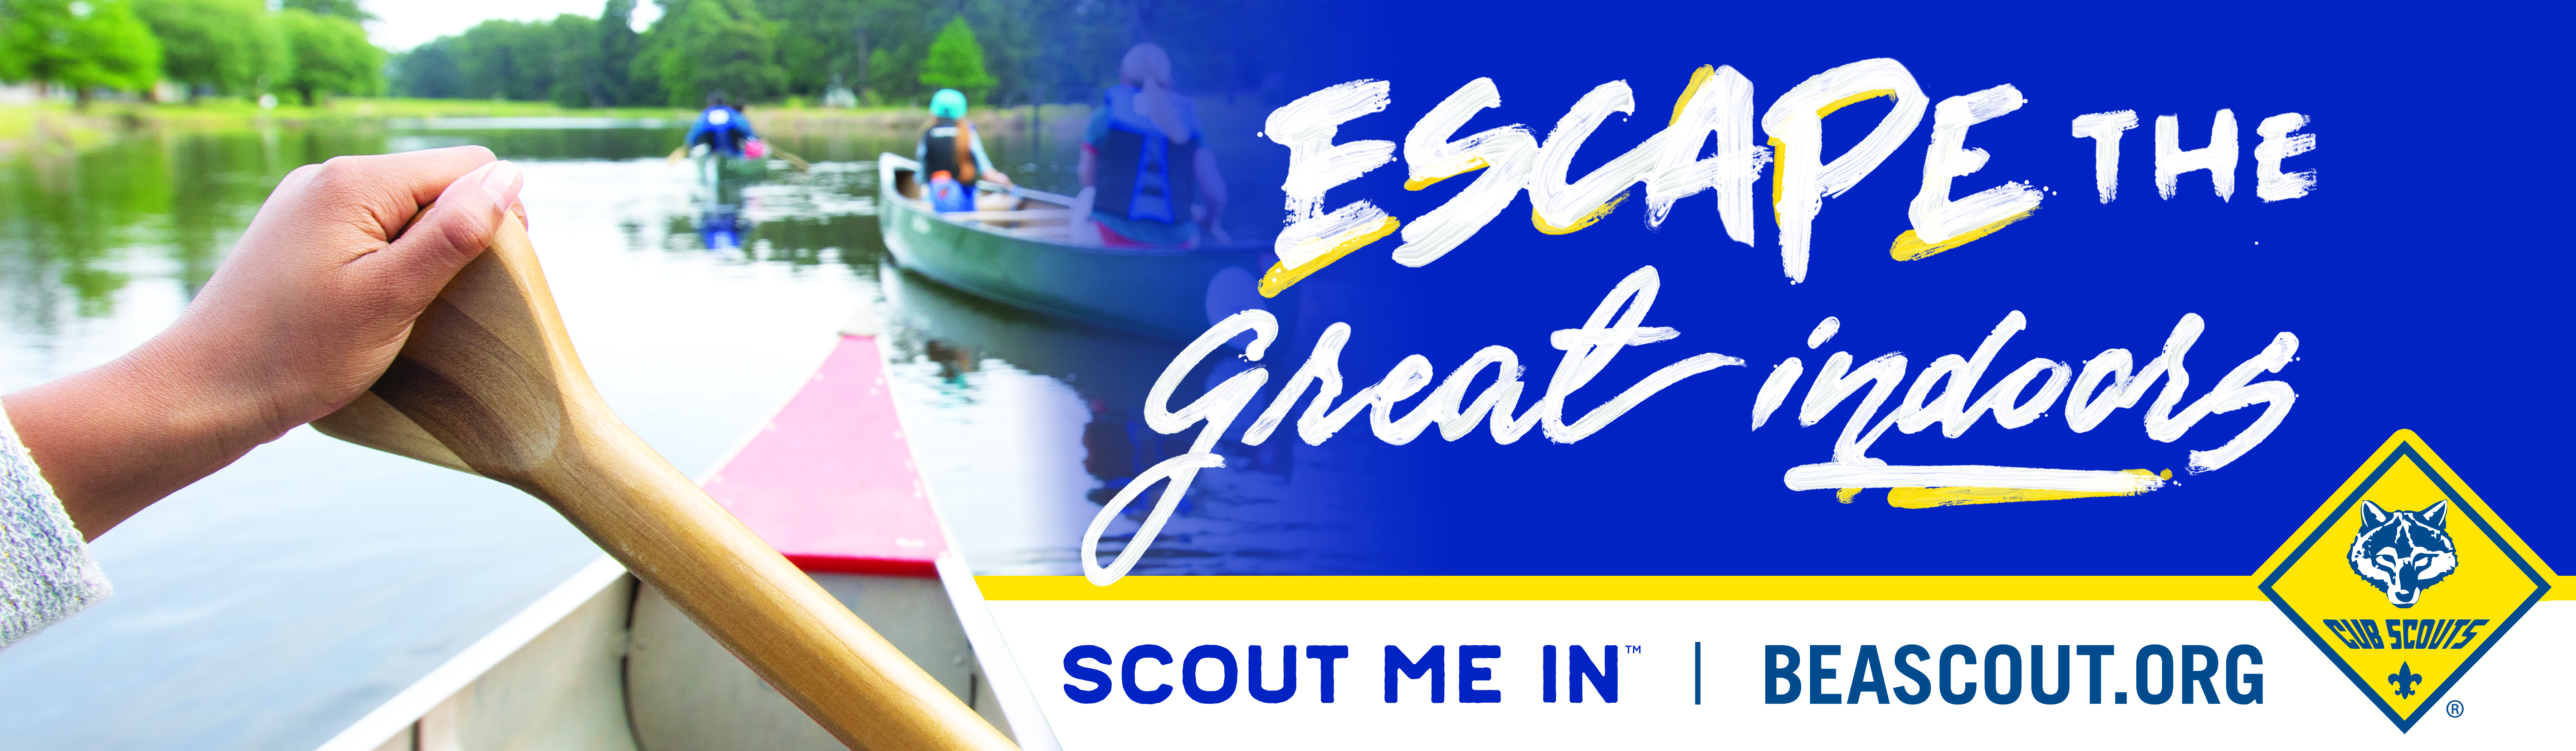 Join Scouting Galveston Brazoria Dickinson League City Friendswood Texas City Alvin Pearland Sweeny Lake Jackson